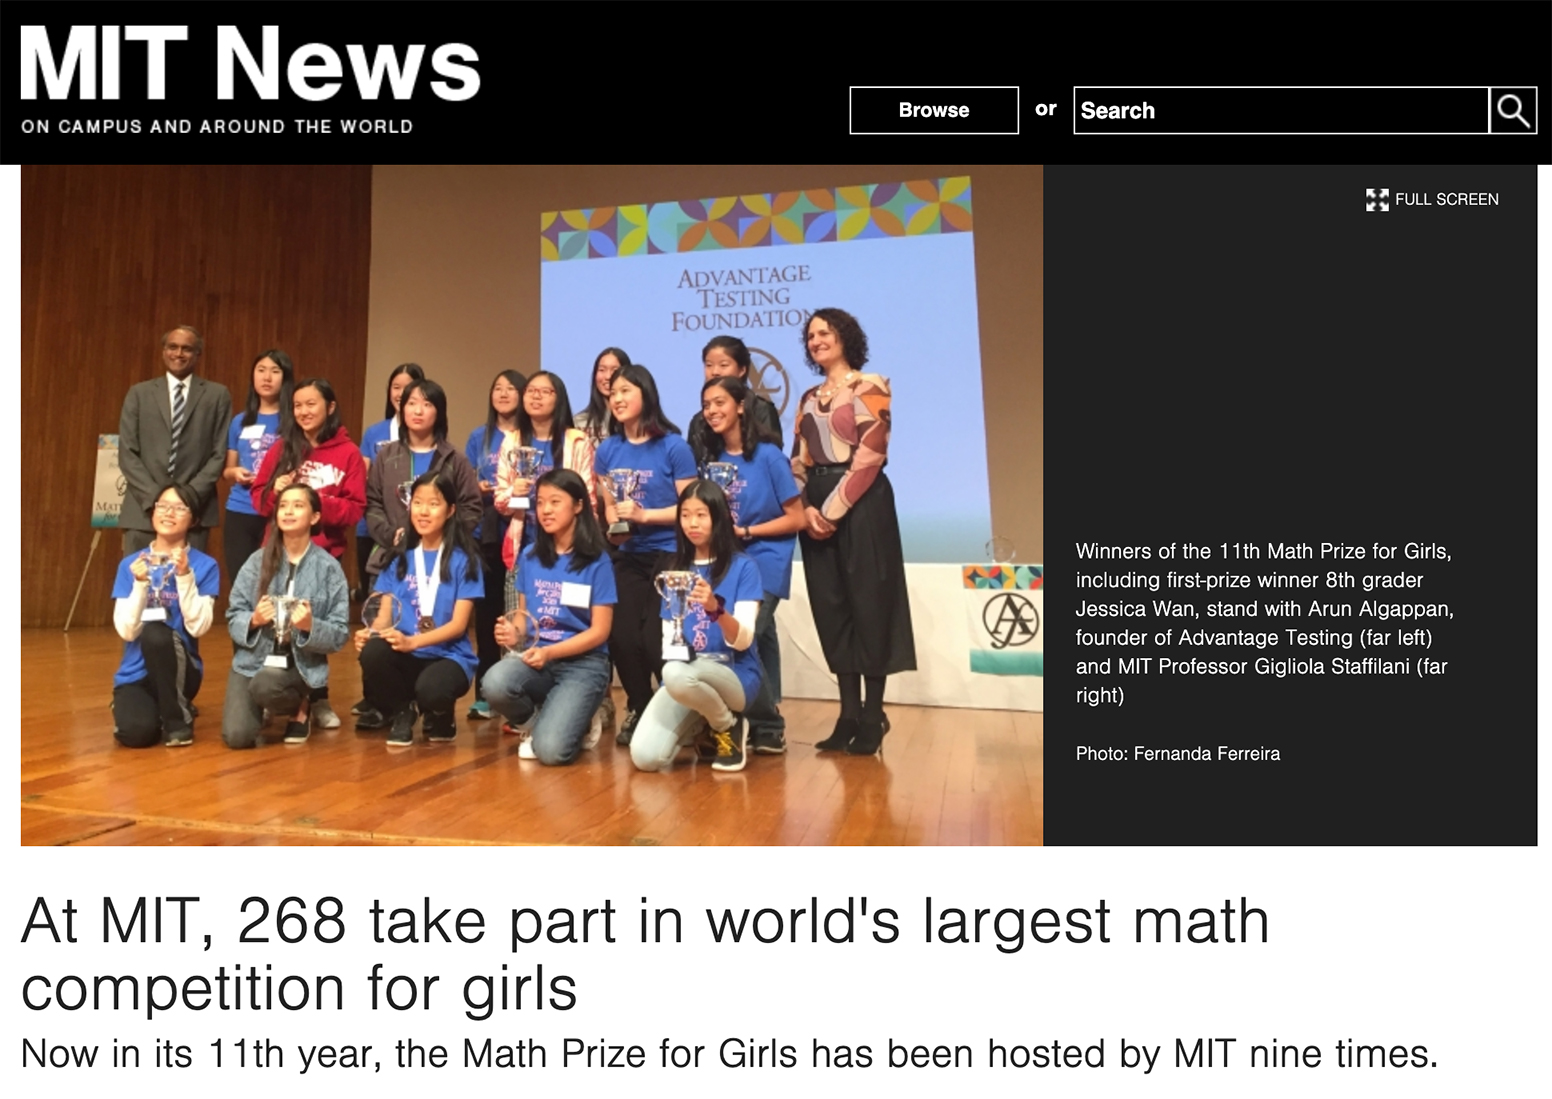 At MIT, 268 take part in world's largest math competition for girls